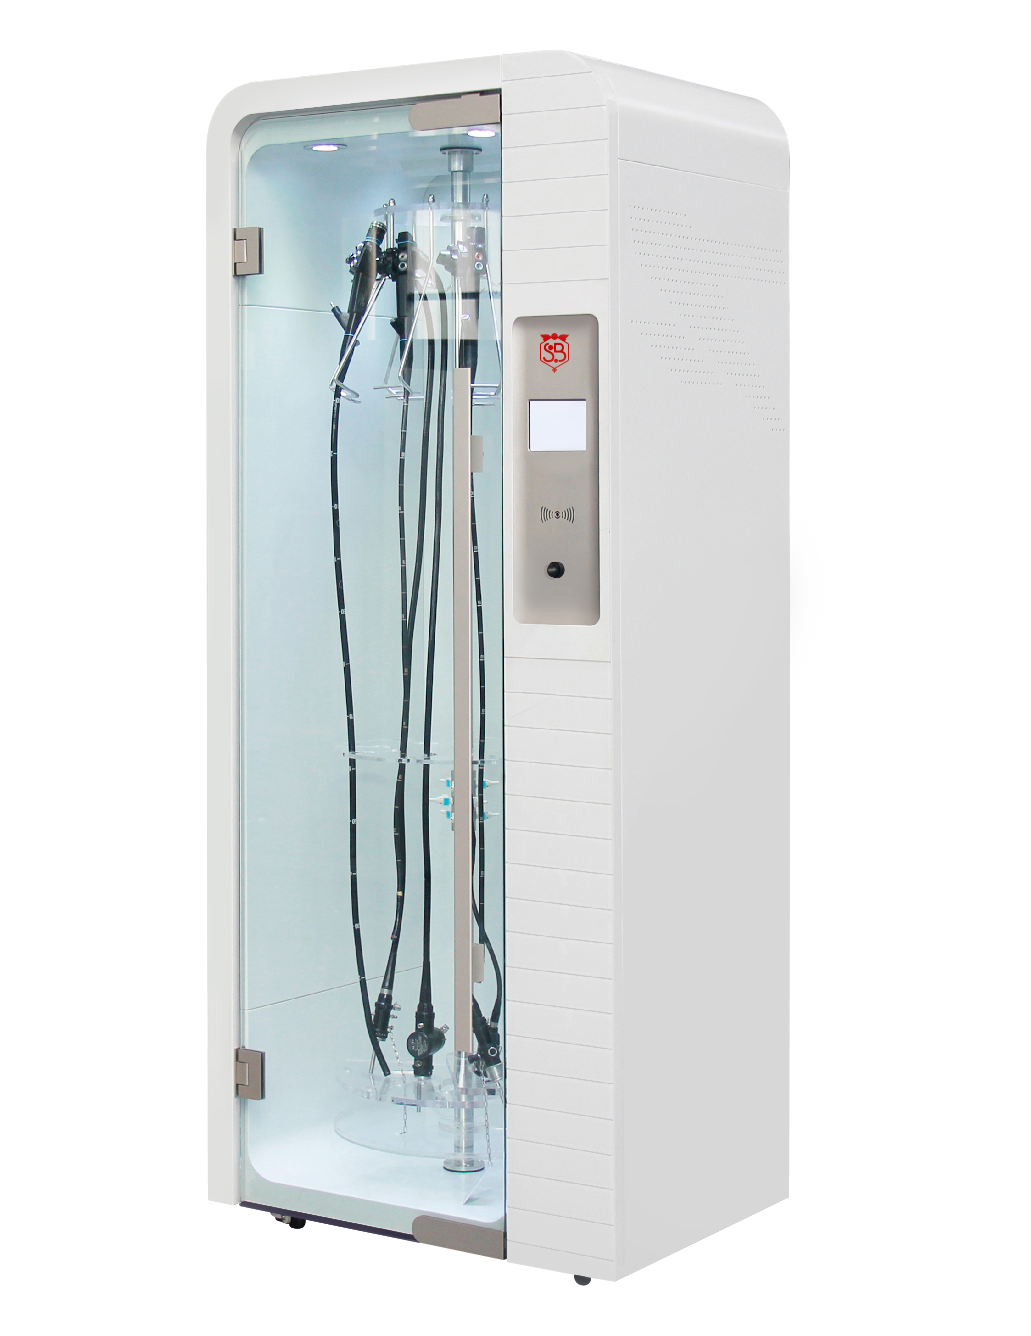 Endoscopy Cleaning Room: FLEXIBLE ENDOSCOPE STORAGE CABINET